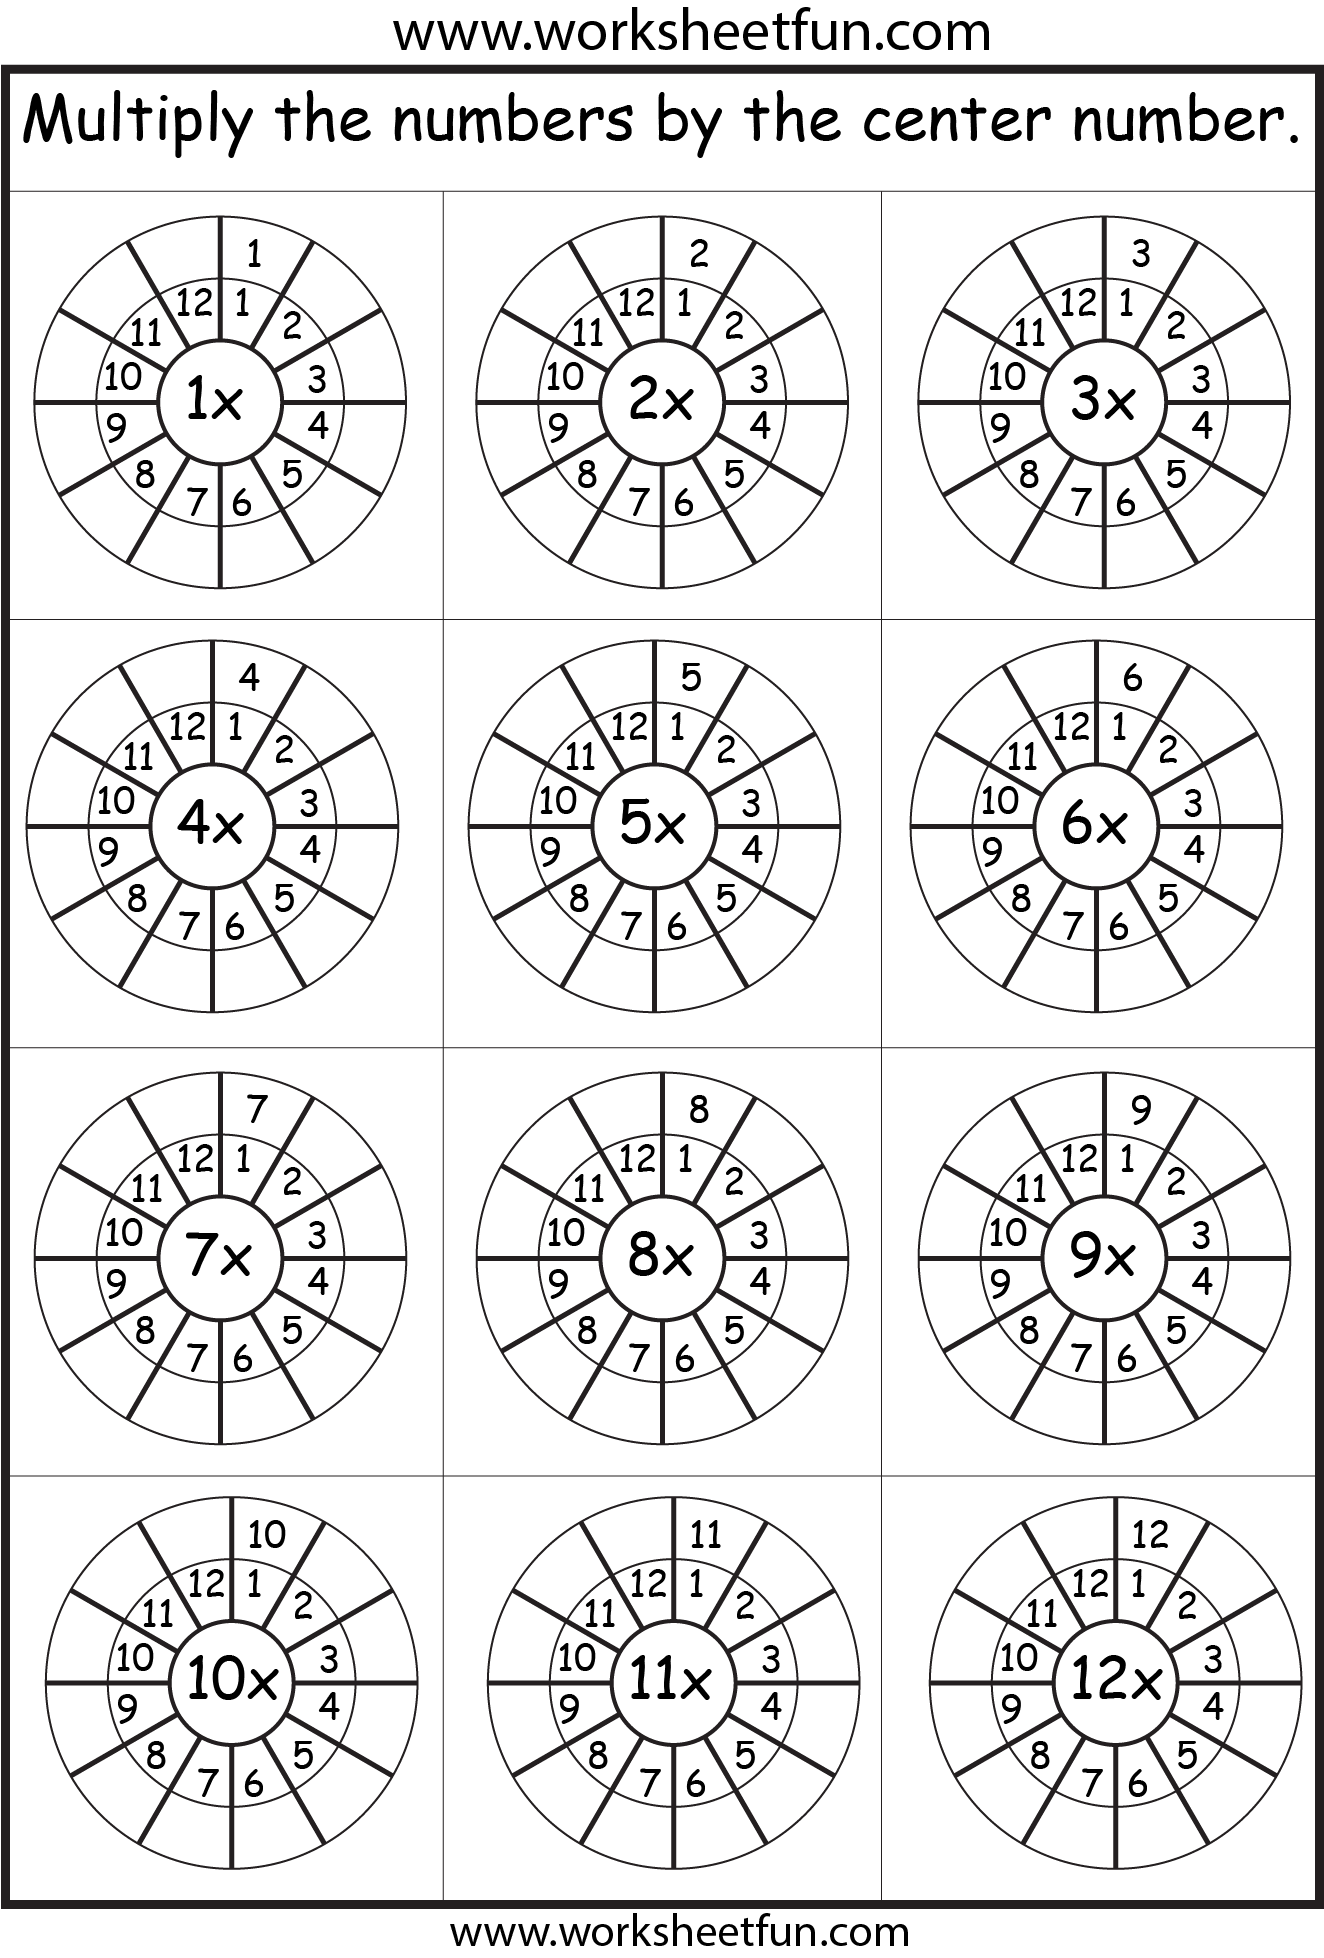 math worksheet : 1000 images about special ed multiplication on pinterest  : Fast Facts Multiplication Worksheets